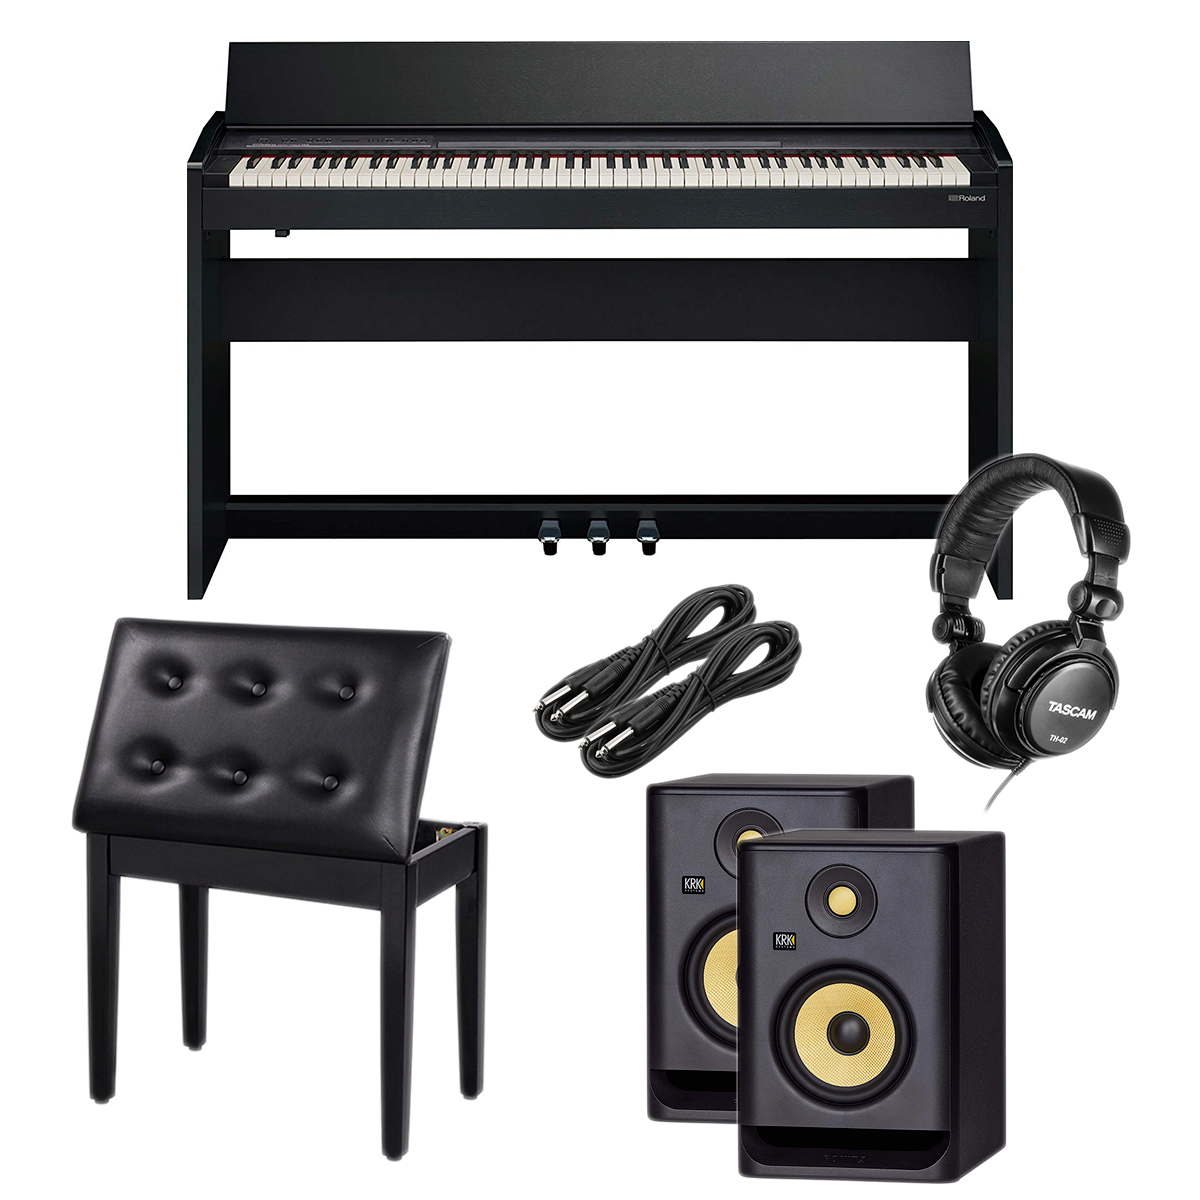 -2 Roland F-140R Digital Piano - Piano Bench - Tascam TH02 - 1:4 Cables 2 - KRK RP5G4 Pair - $1499.99